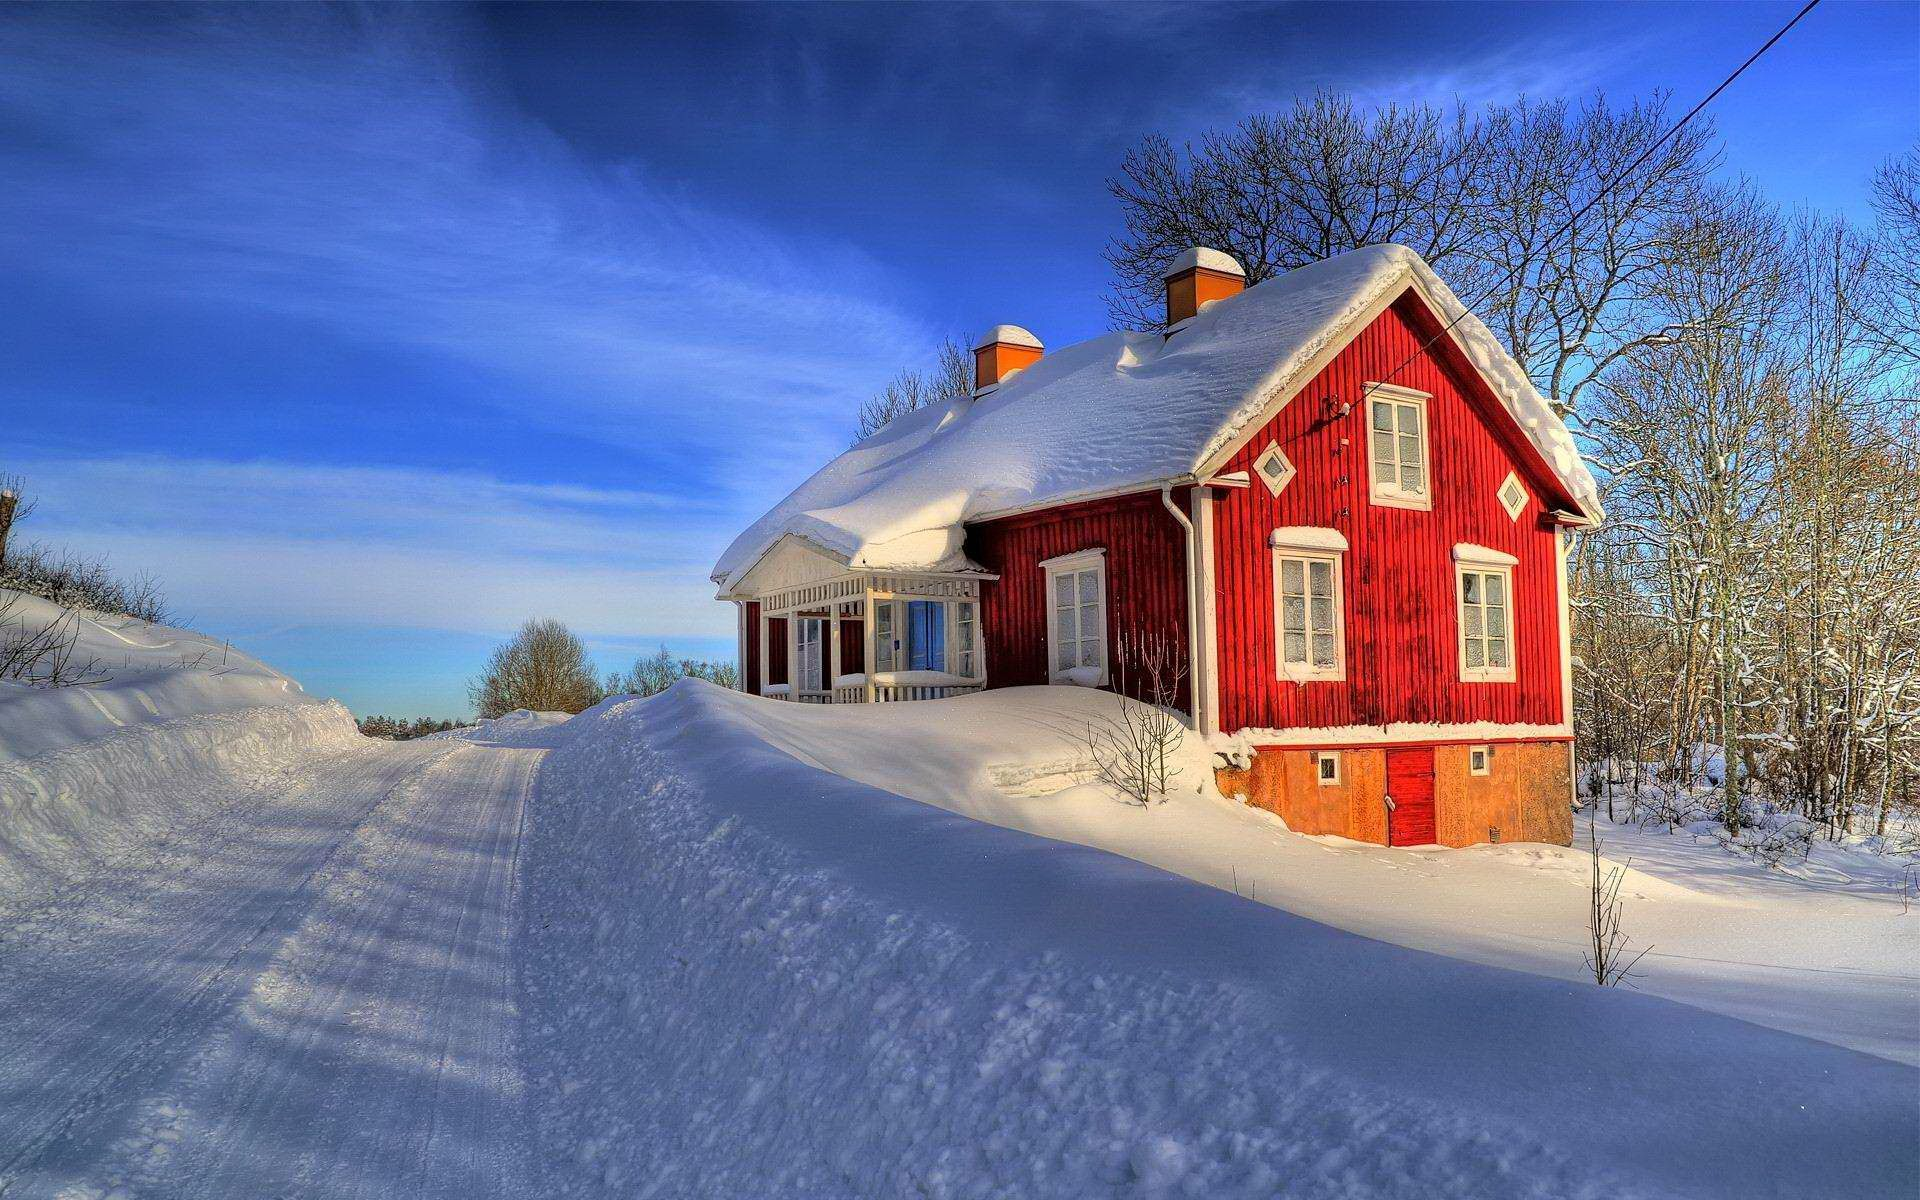 Sweden Snow Wallpapers Top Free Sweden Snow Backgrounds Wallpaperaccess